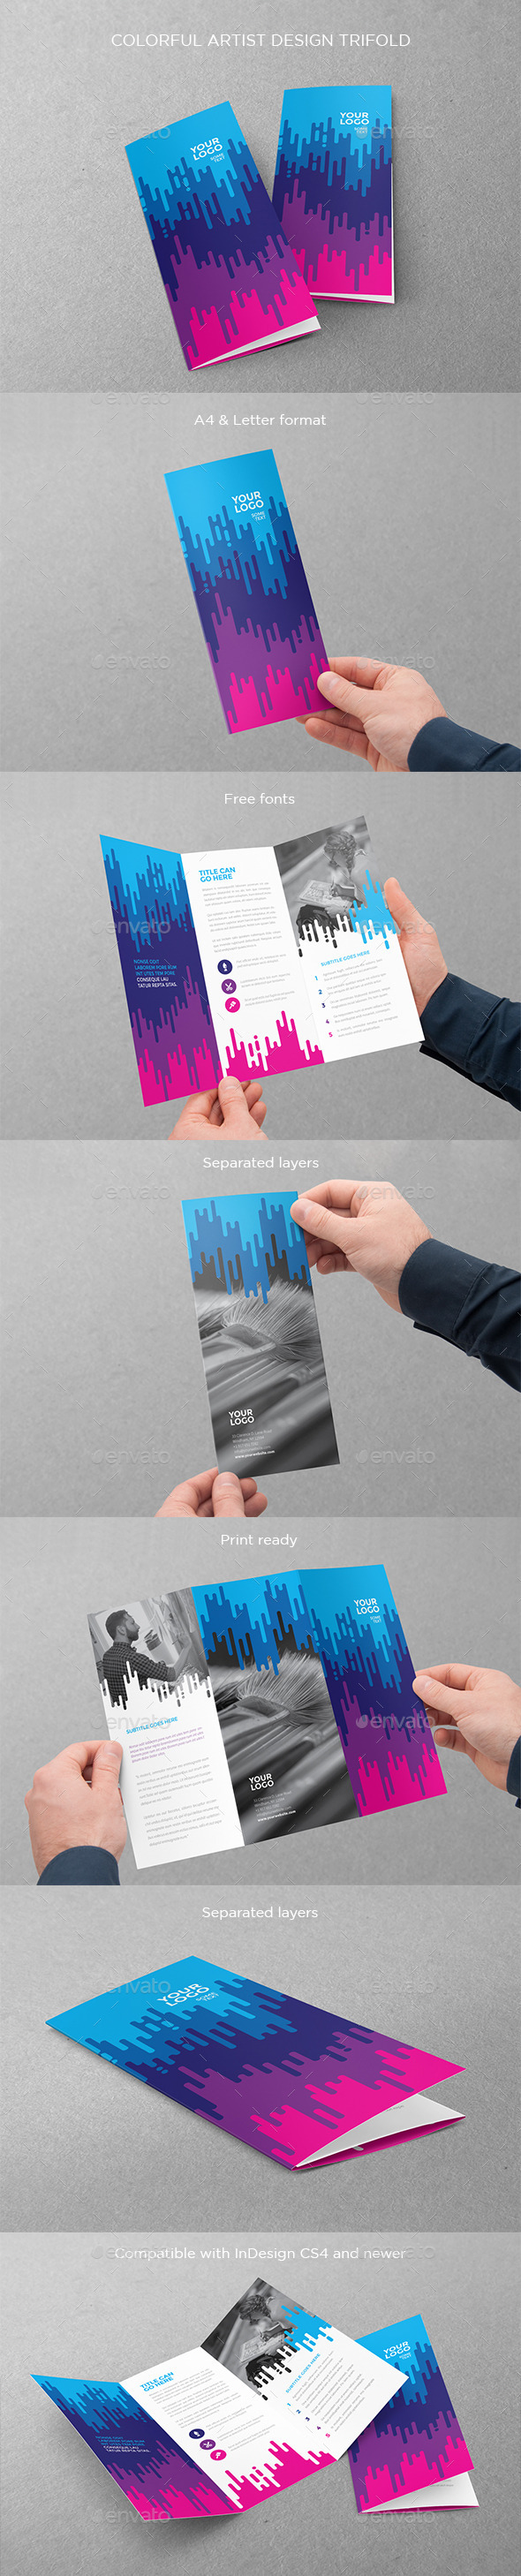 Colorful Artist Design Trifold - Brochures Print Templates